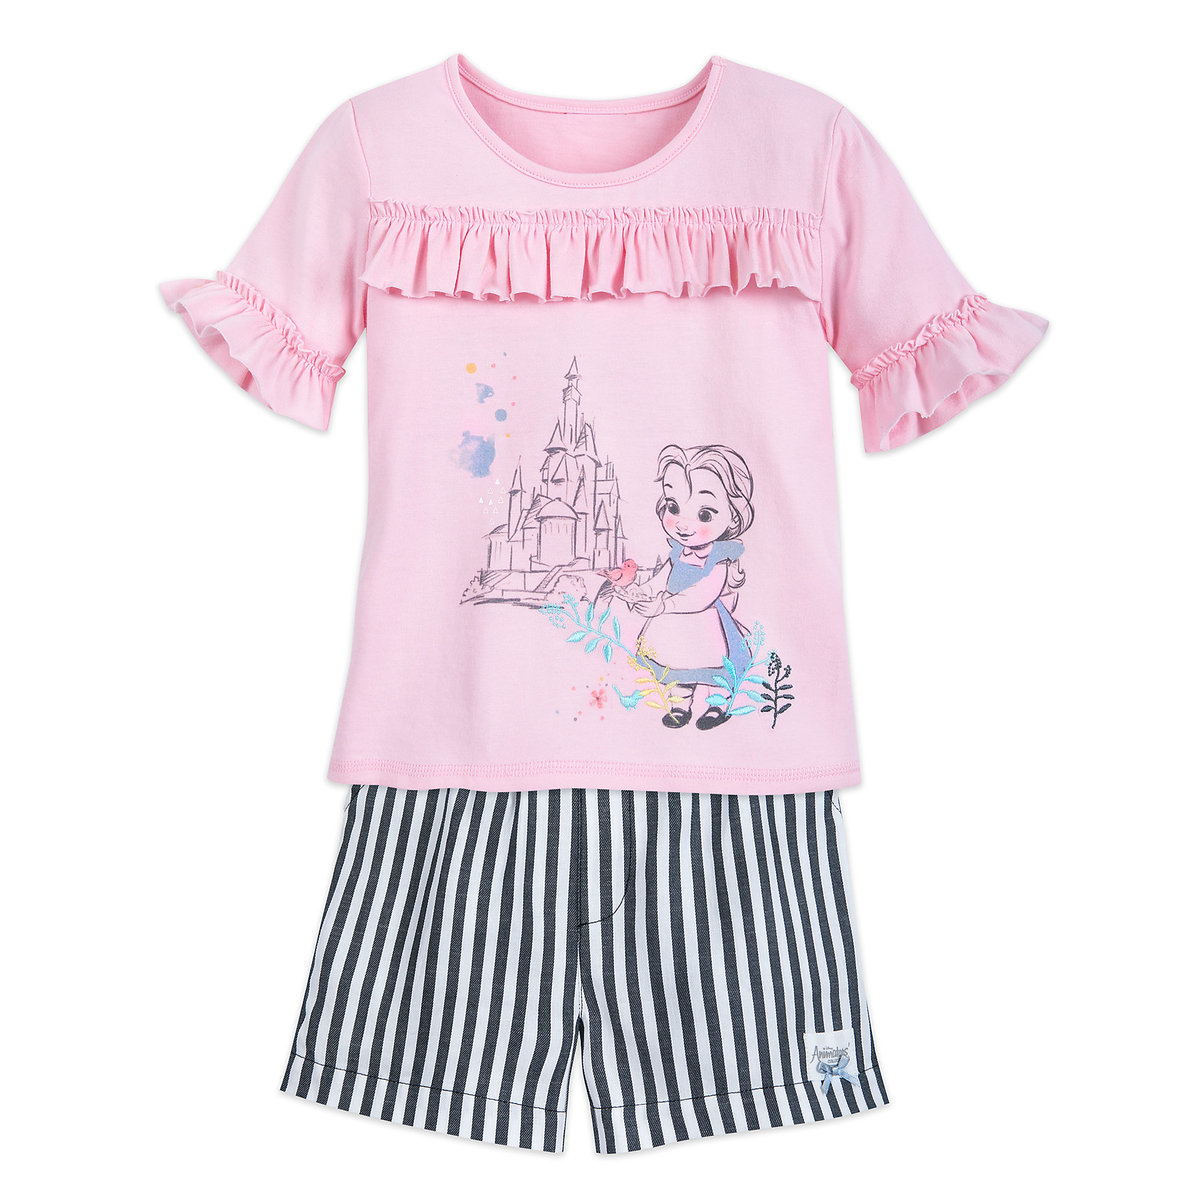 ab0b60991634d Product Image of Disney Animators' Collection Belle Top and Shorts Set for  Girls # 1